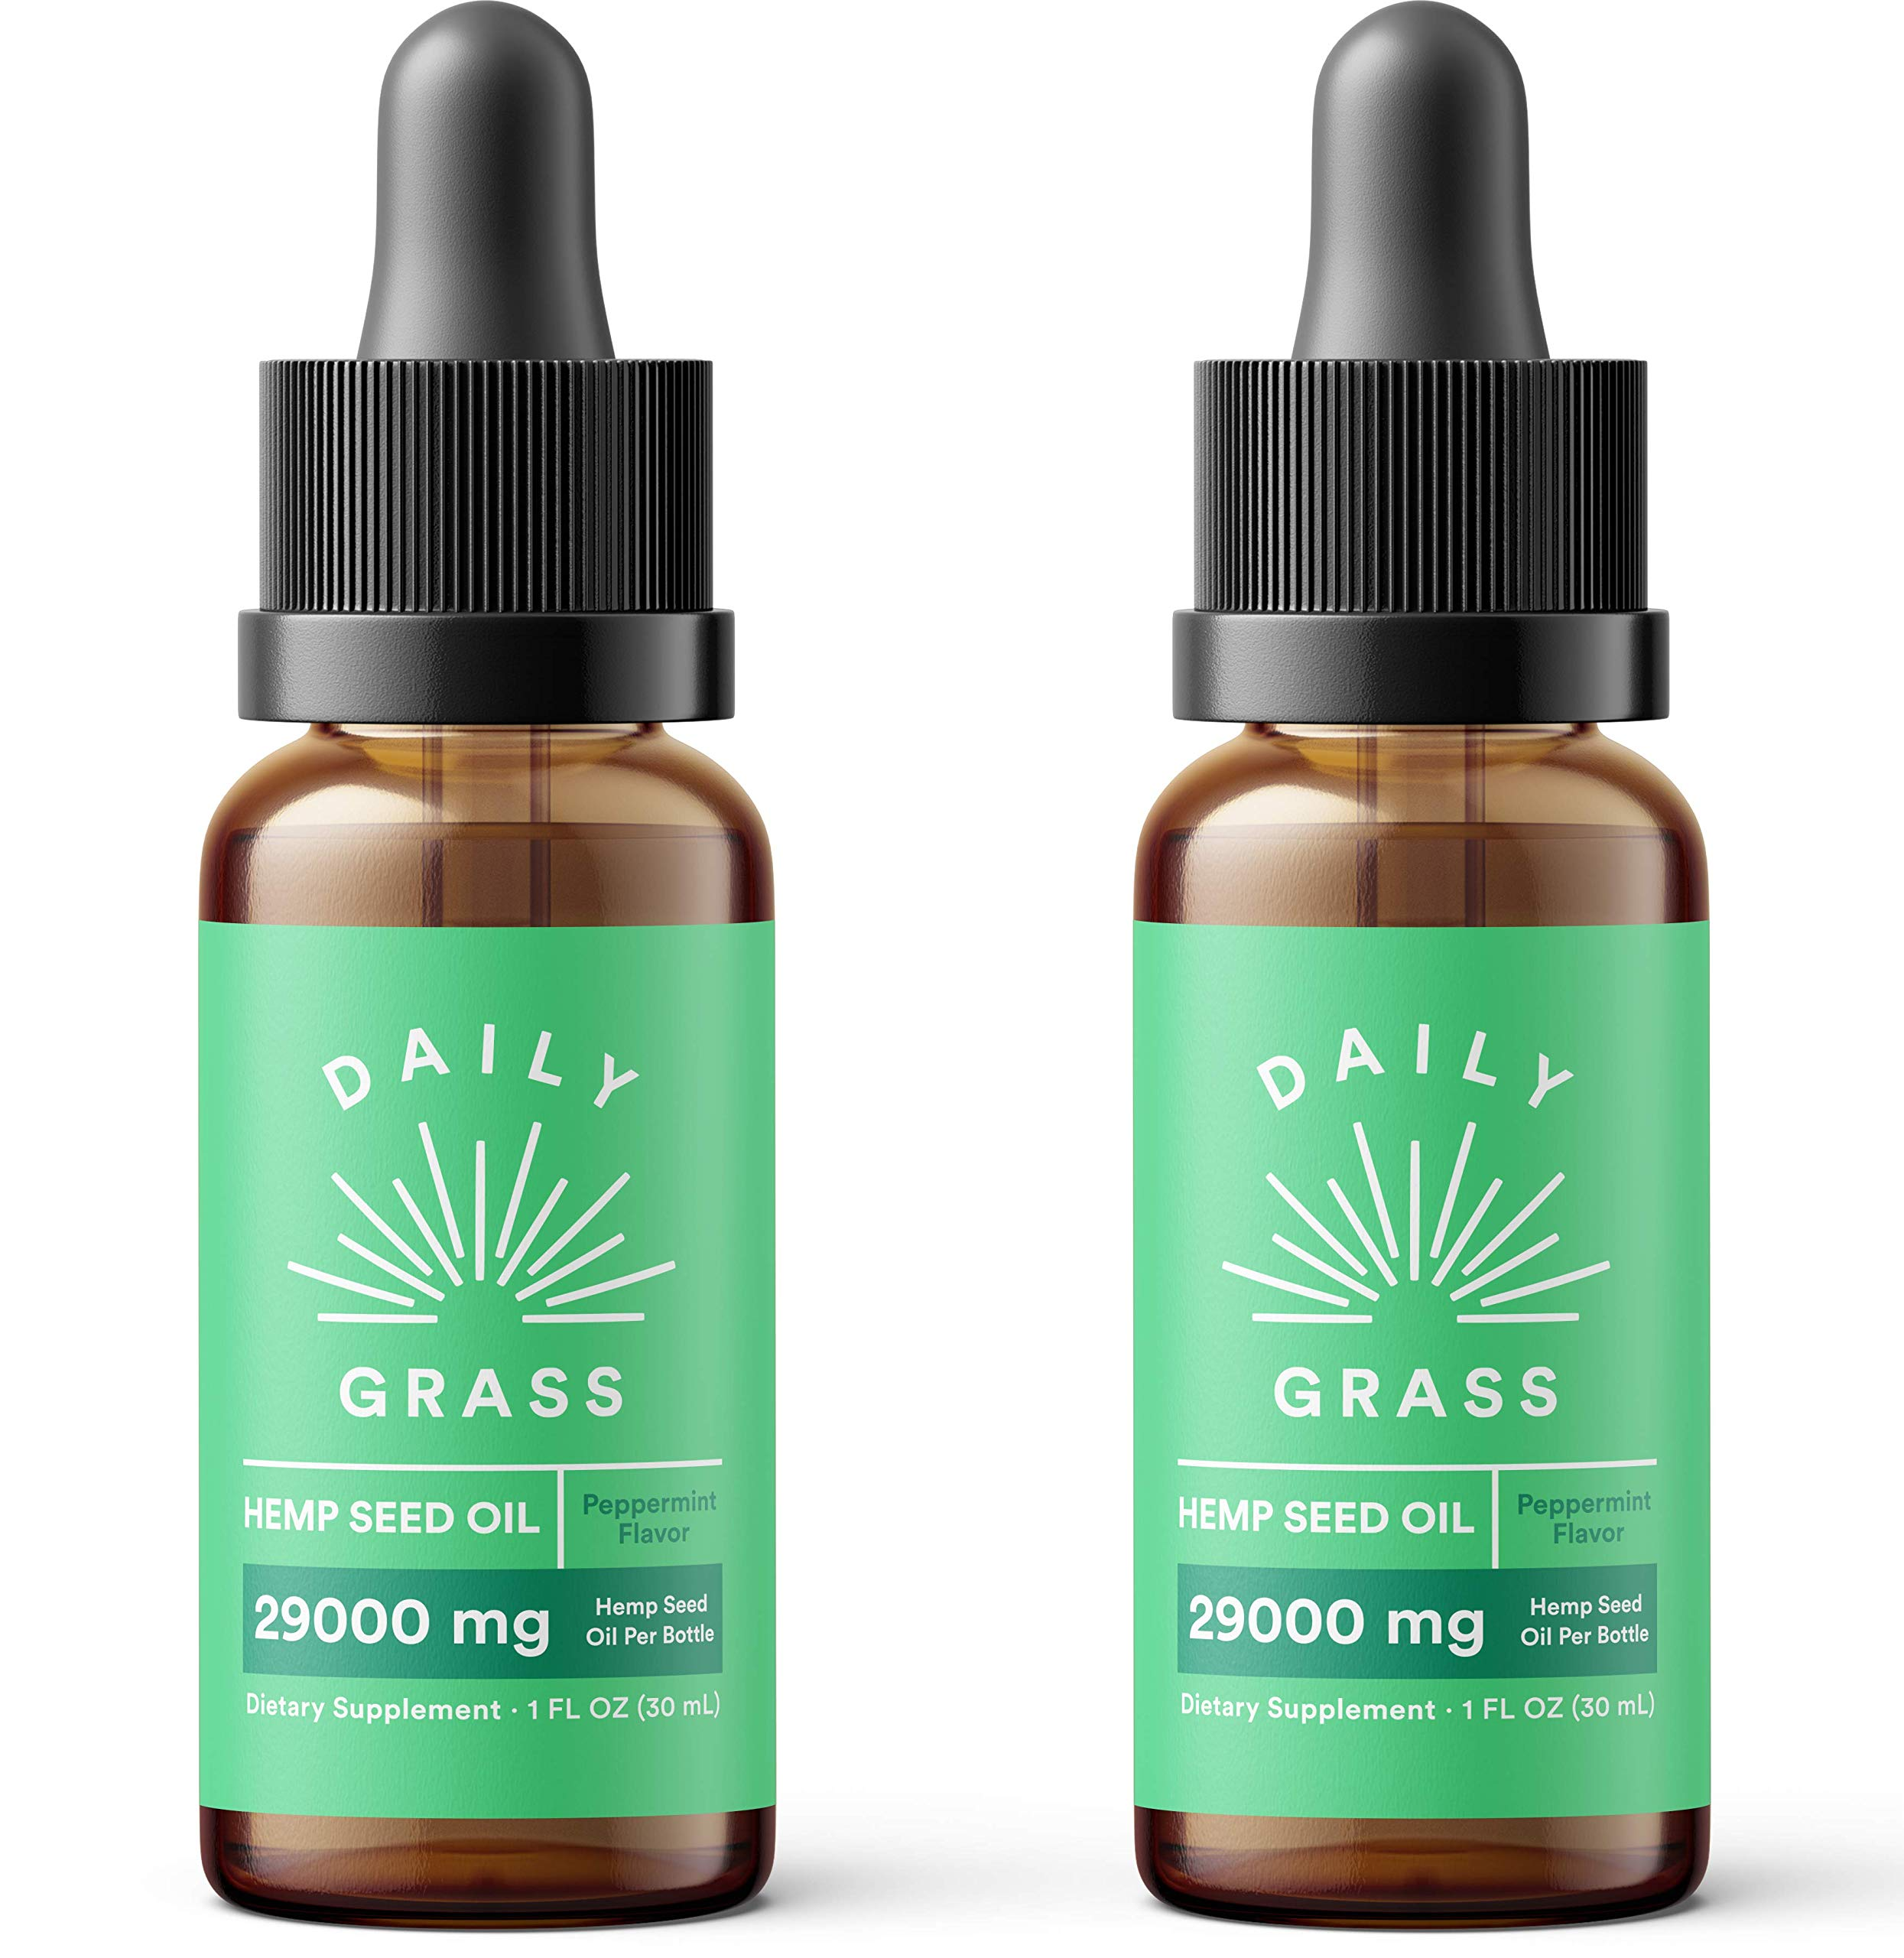 (2-Pack) Pure Hemp Oil Extract for Pain & Stress Relief - 29000mg of Organic Hemp Extract - Grown & Made in USA - 100% Natural Tincture Hemp Drops for Humans & Dogs - Helps with Sleep, Skin & Hair by FLYBY